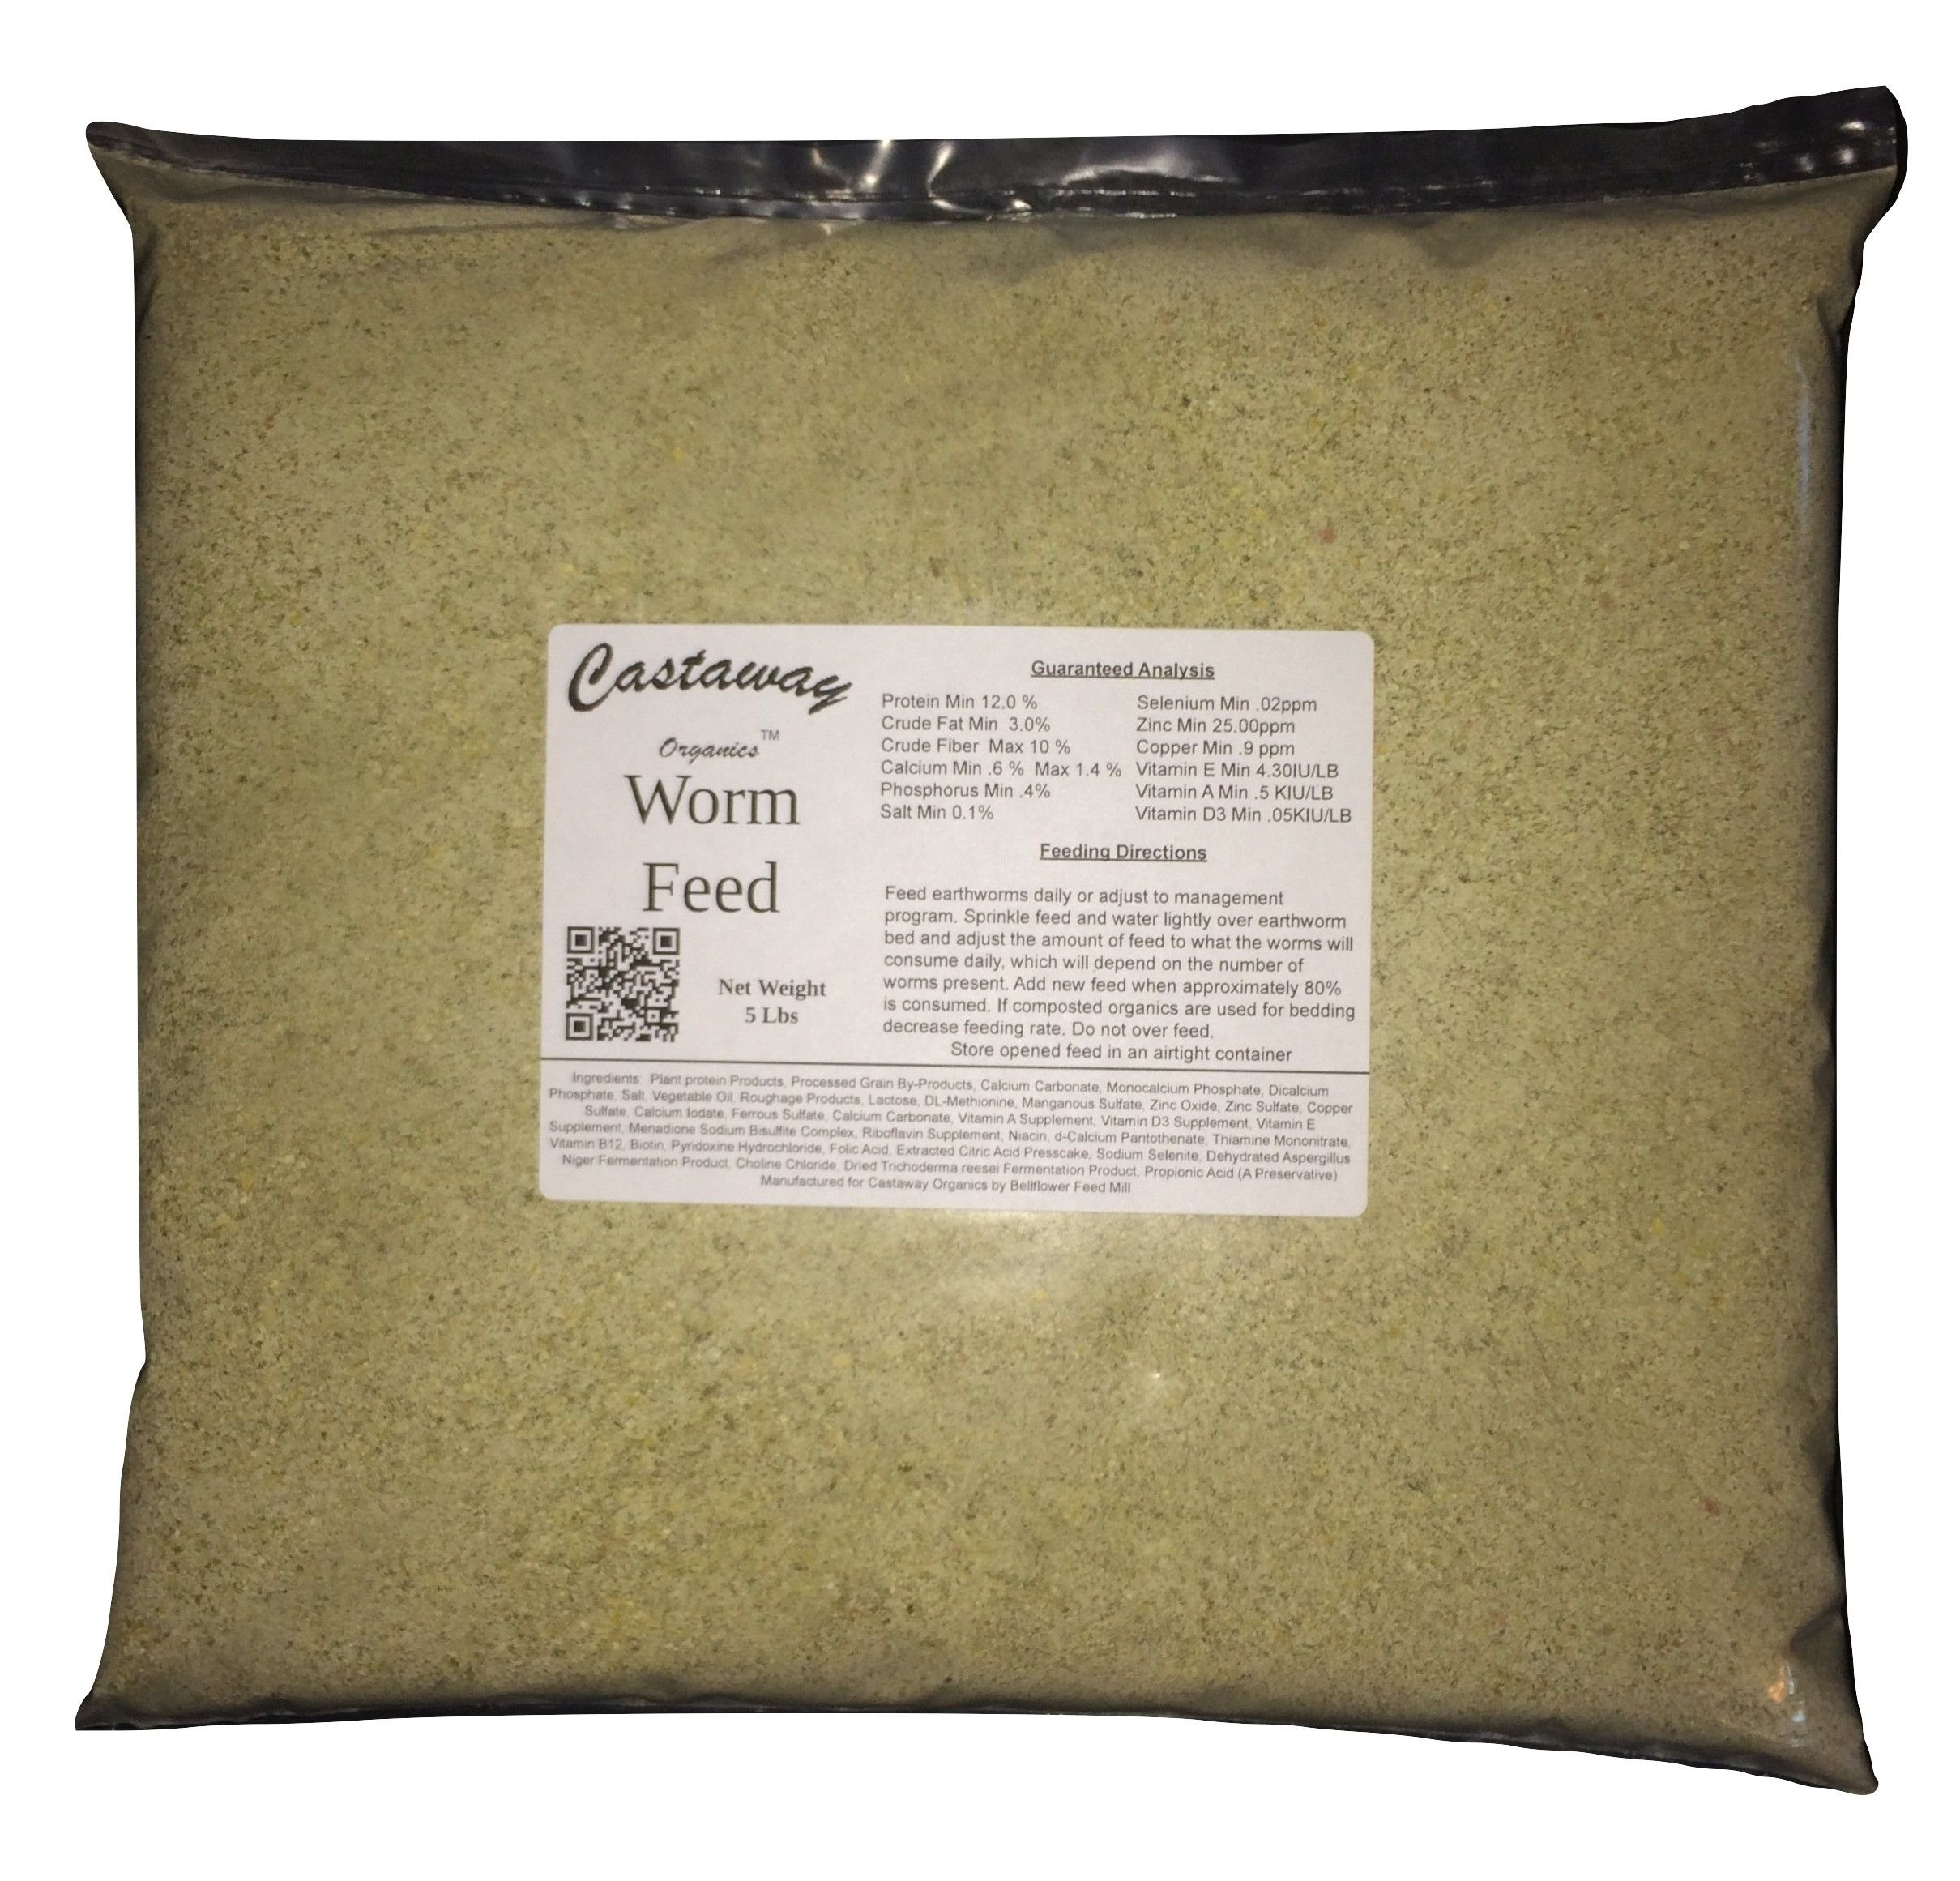 5 lbs Castaway Organics Worm Feed (Worm Chow Food for All Composting and Bait Worms)